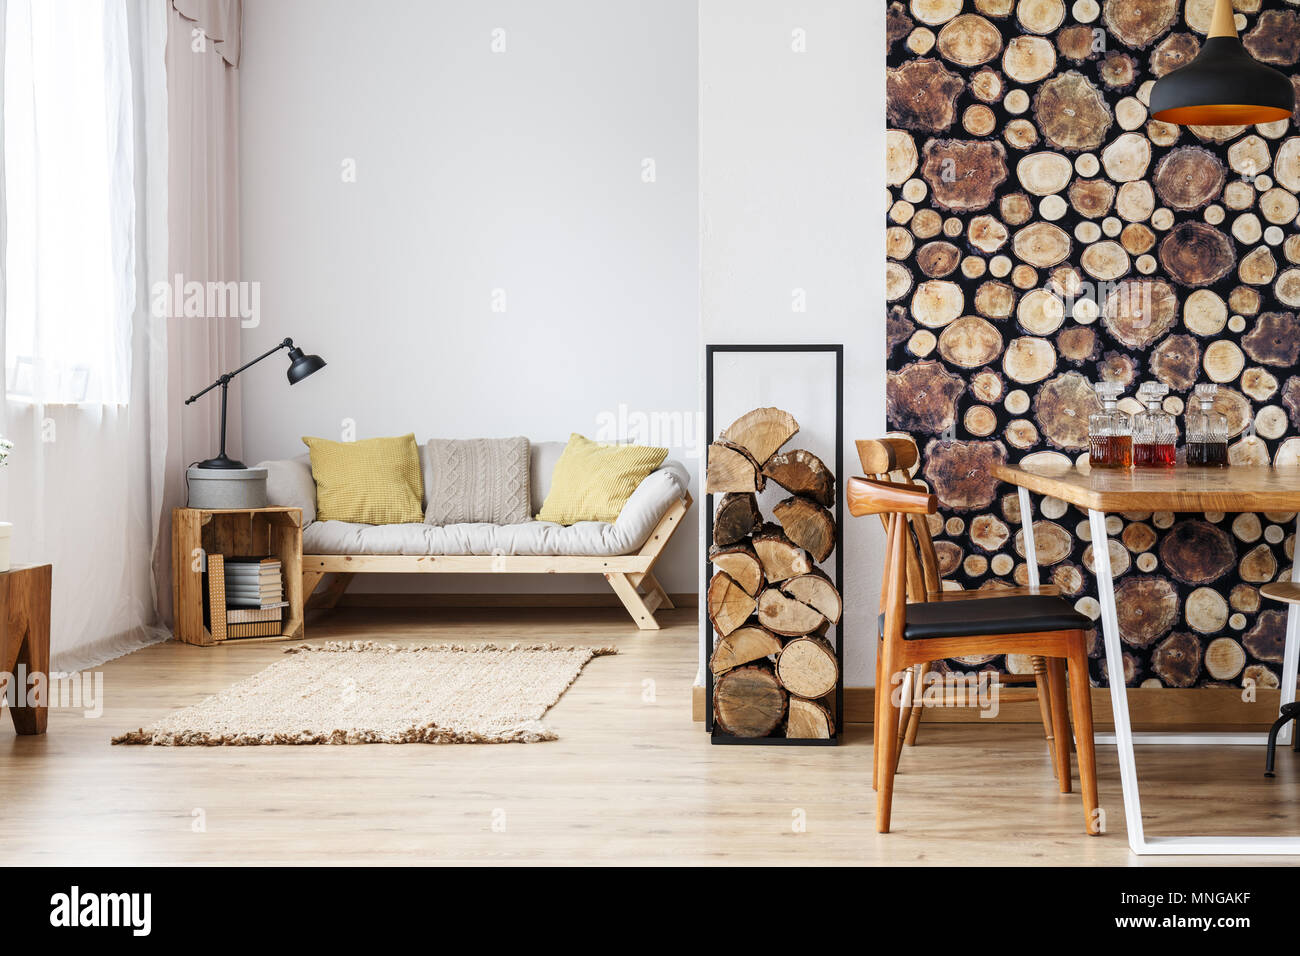 Natural design in open plan studio with log holder, wood wallpaper in separated dining room and wooden box standing next to sofa in living space - Stock Image